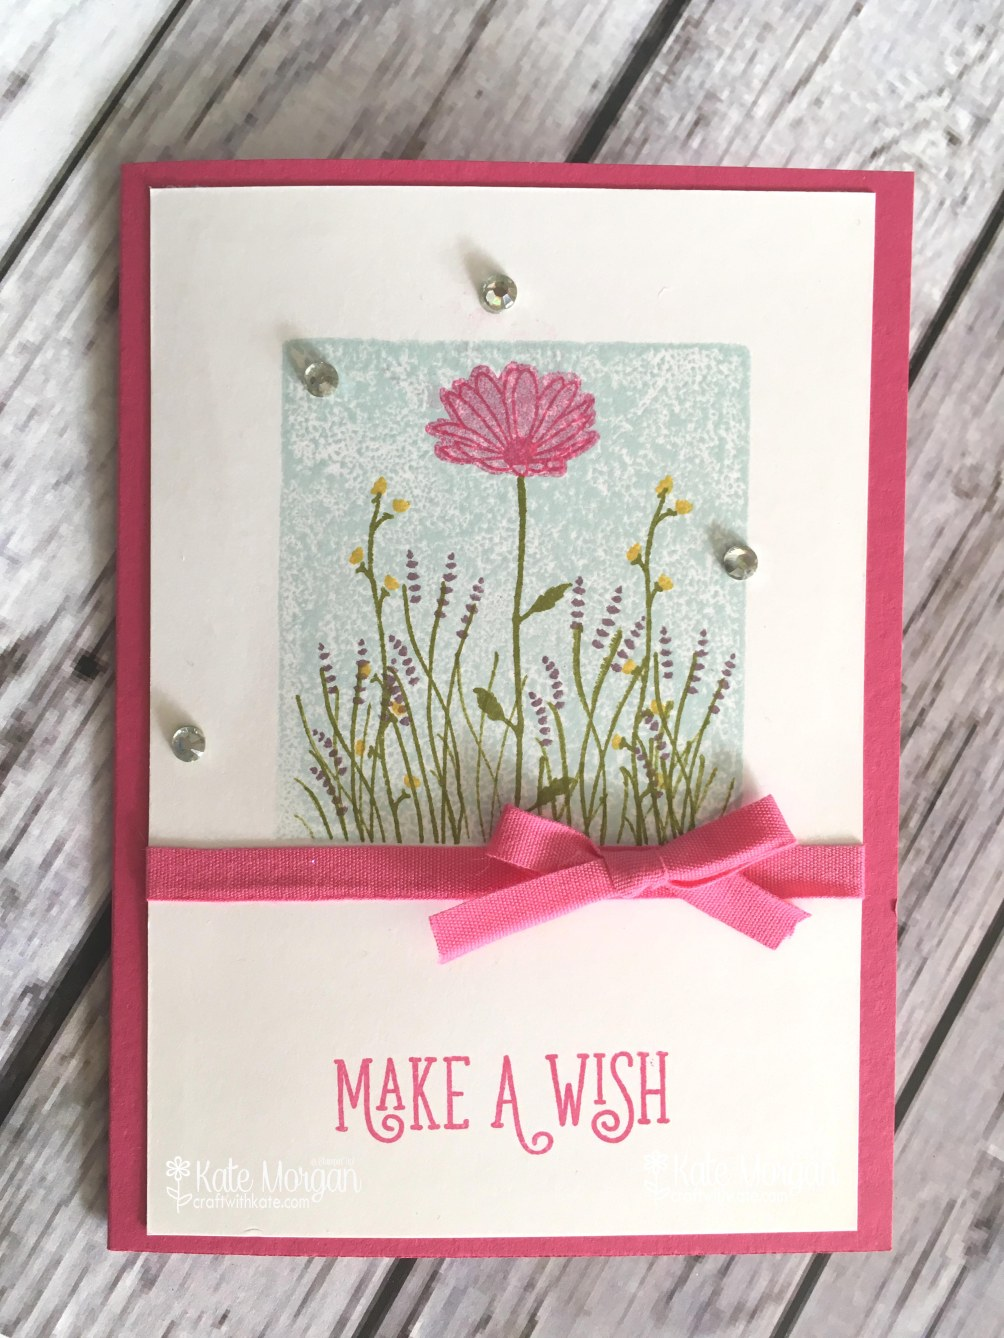 Stamping Block Technique with Daisy Delight and Happy Birthday Gorgeous by Kate Morgan, Independent Stampin' Up! Demostrator, Australia.JPG